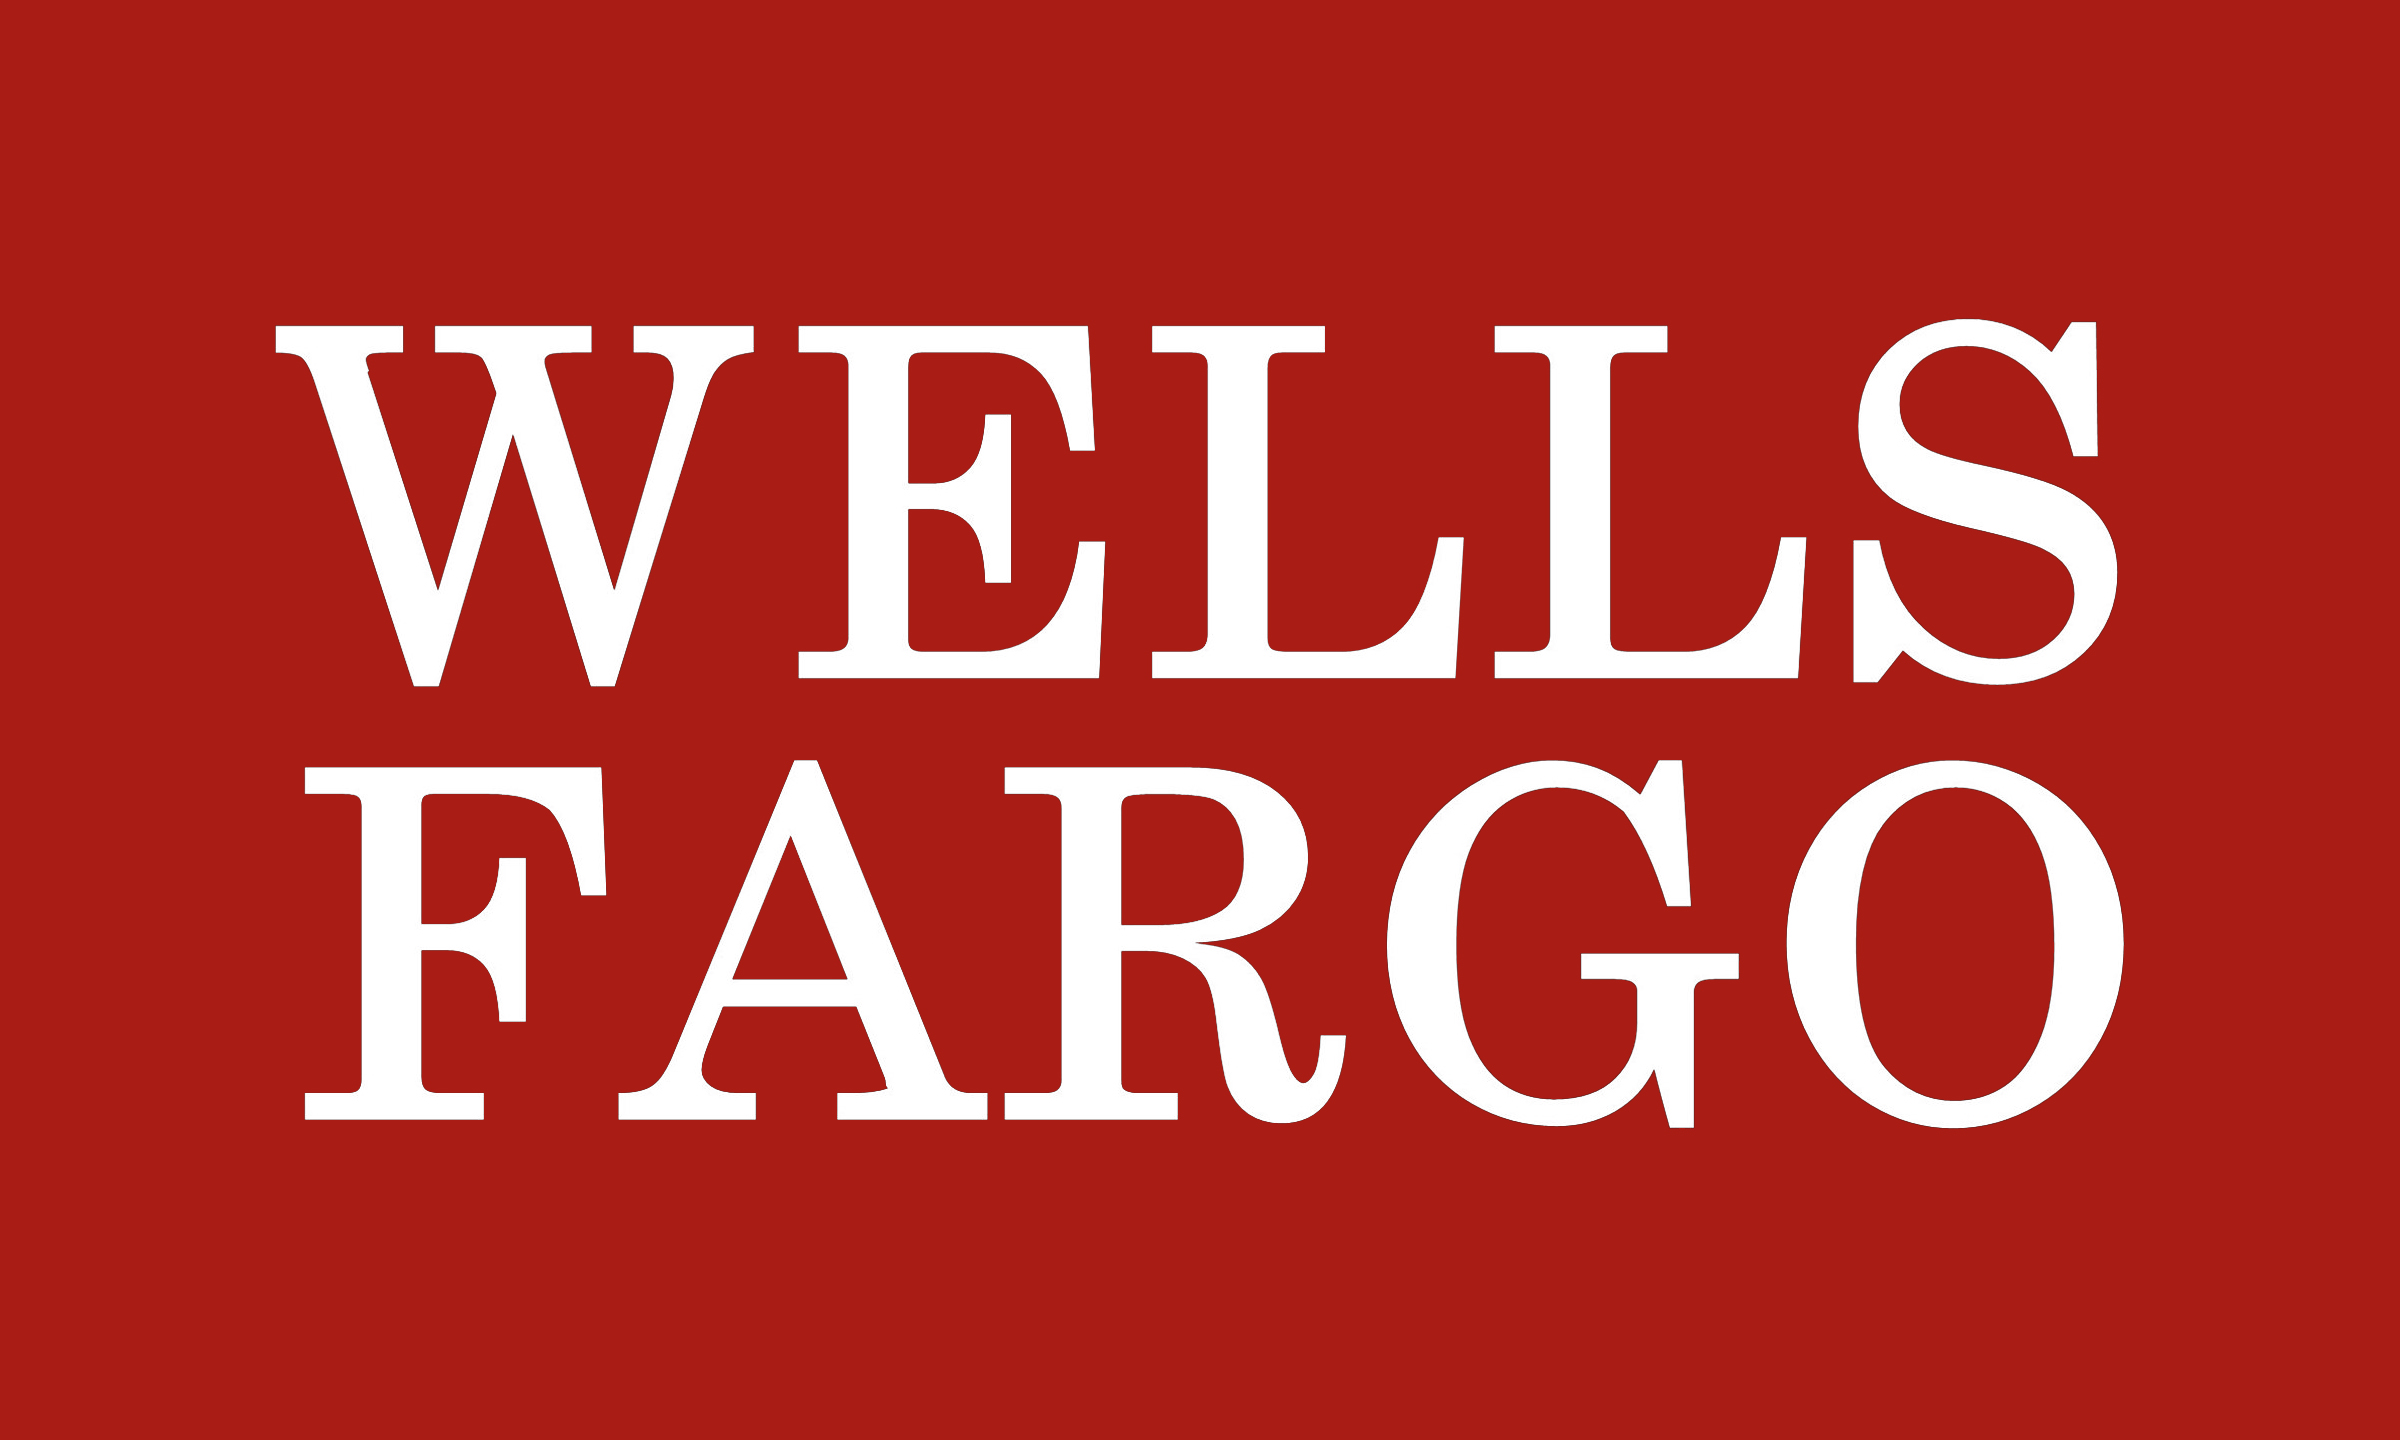 Wells Fargo logo and symbol, meaning, history, PNG